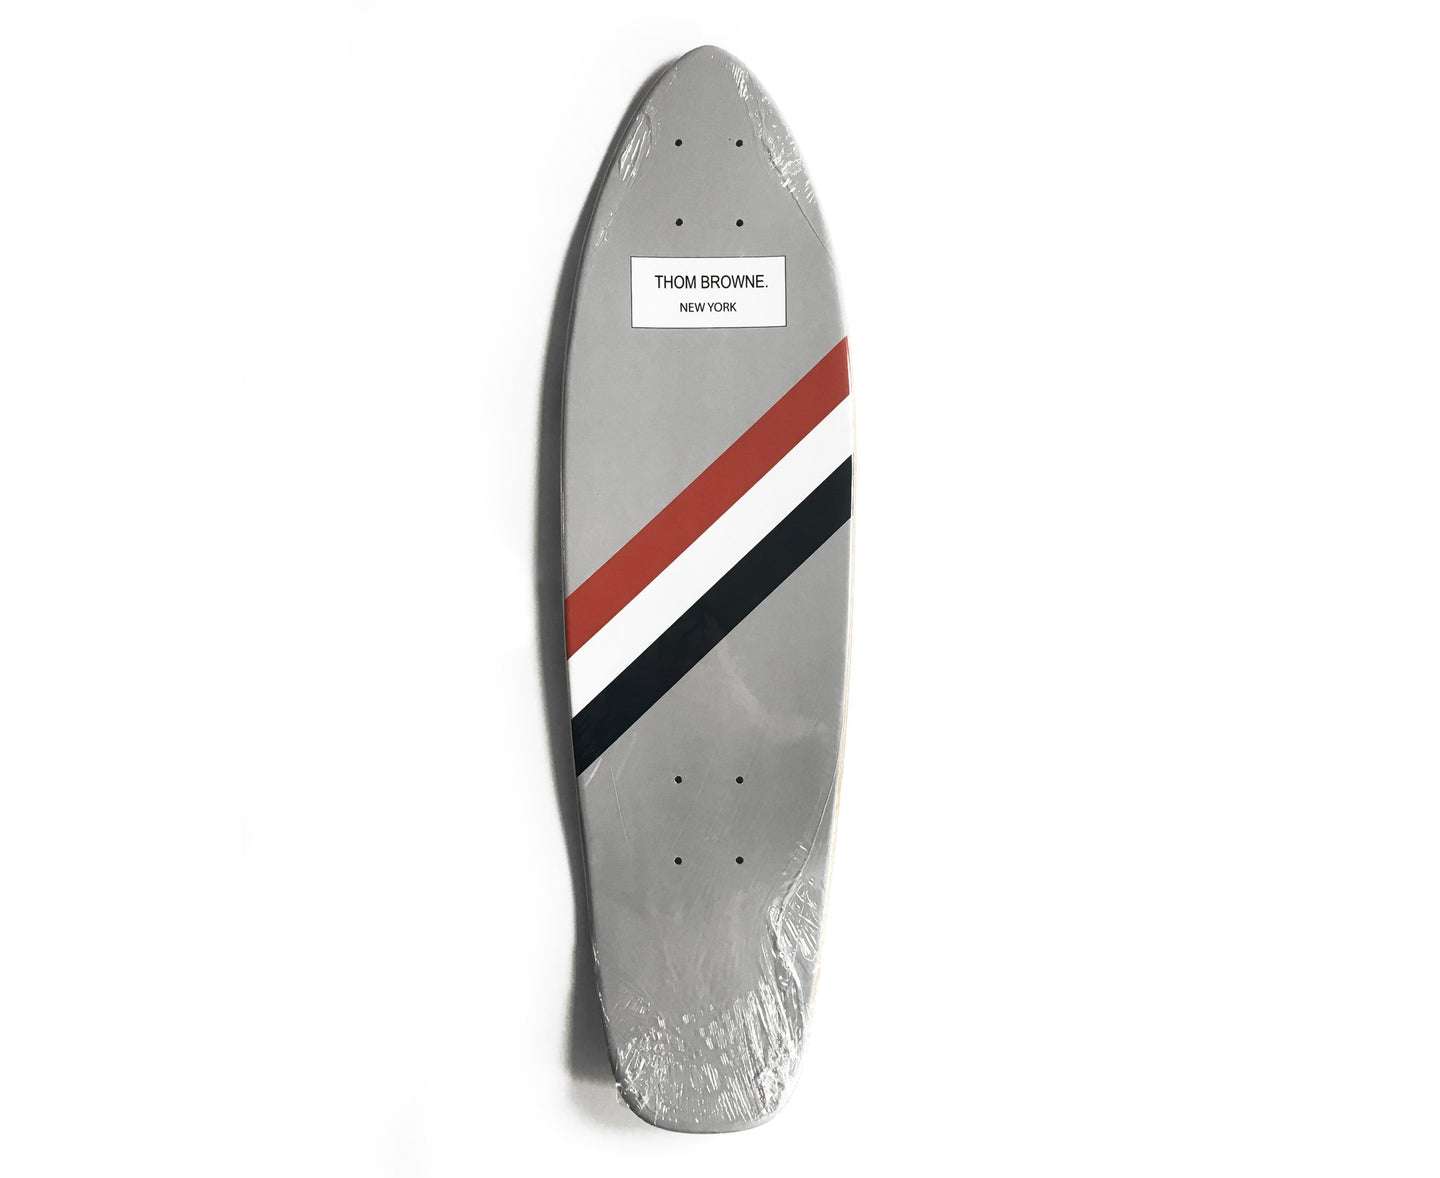 Thom Browne Skateboard Deck